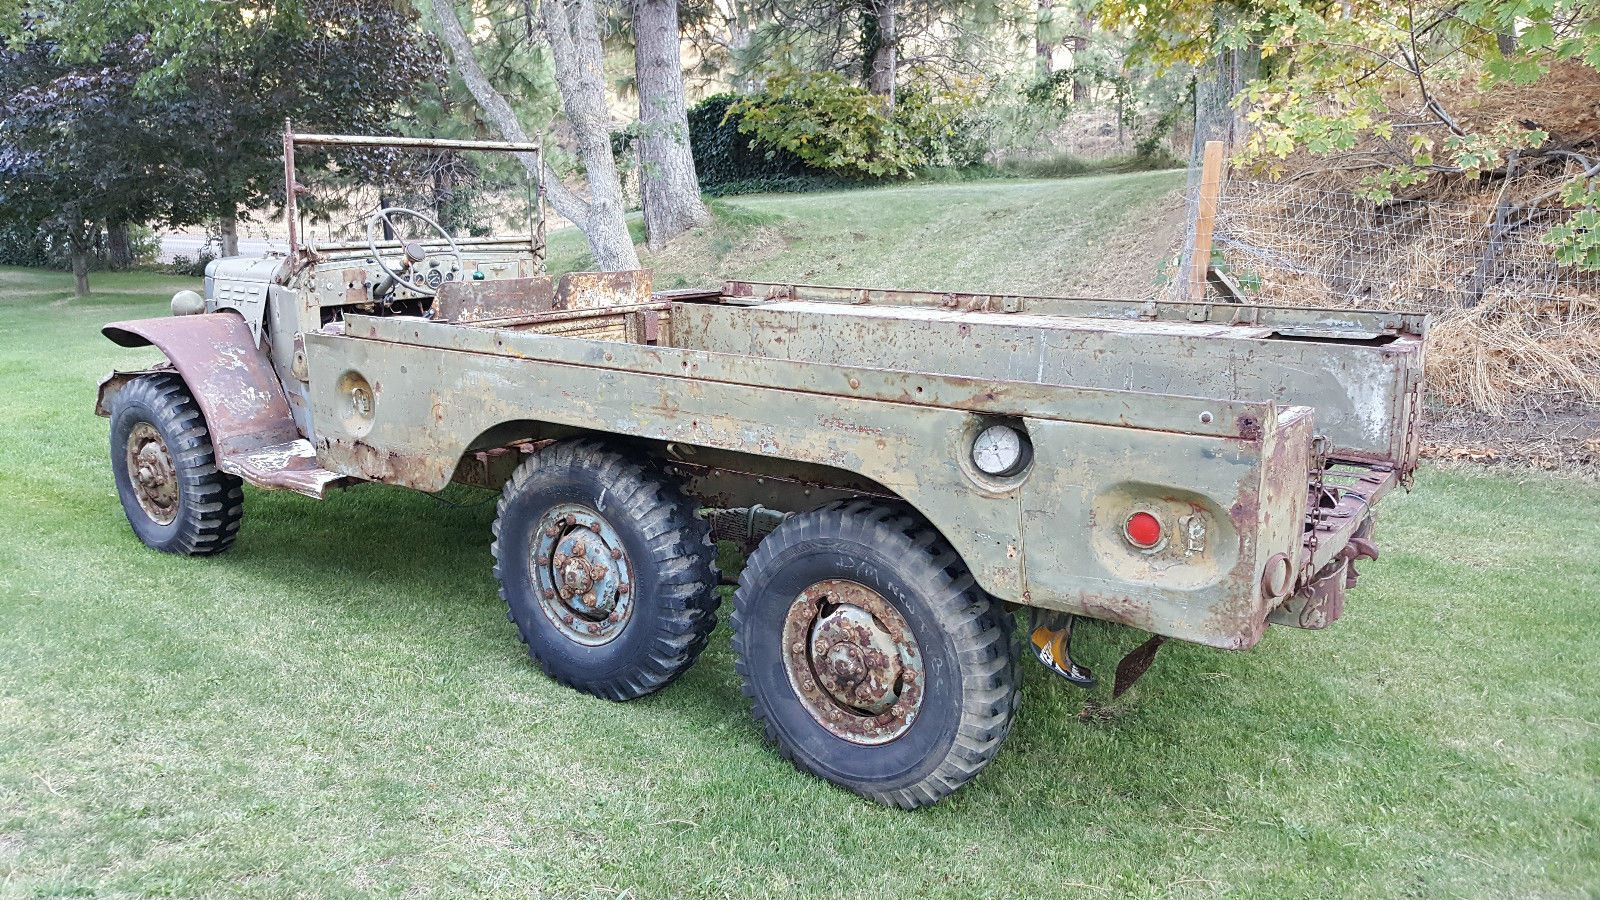 8950 1942 Dodge Wc 62 6 Combat Rims W Good Tires We Have Not Tried To Start It Yet David 714 310 9934 Dodge Power Wagon Power Wagon Power Wagon For Sale